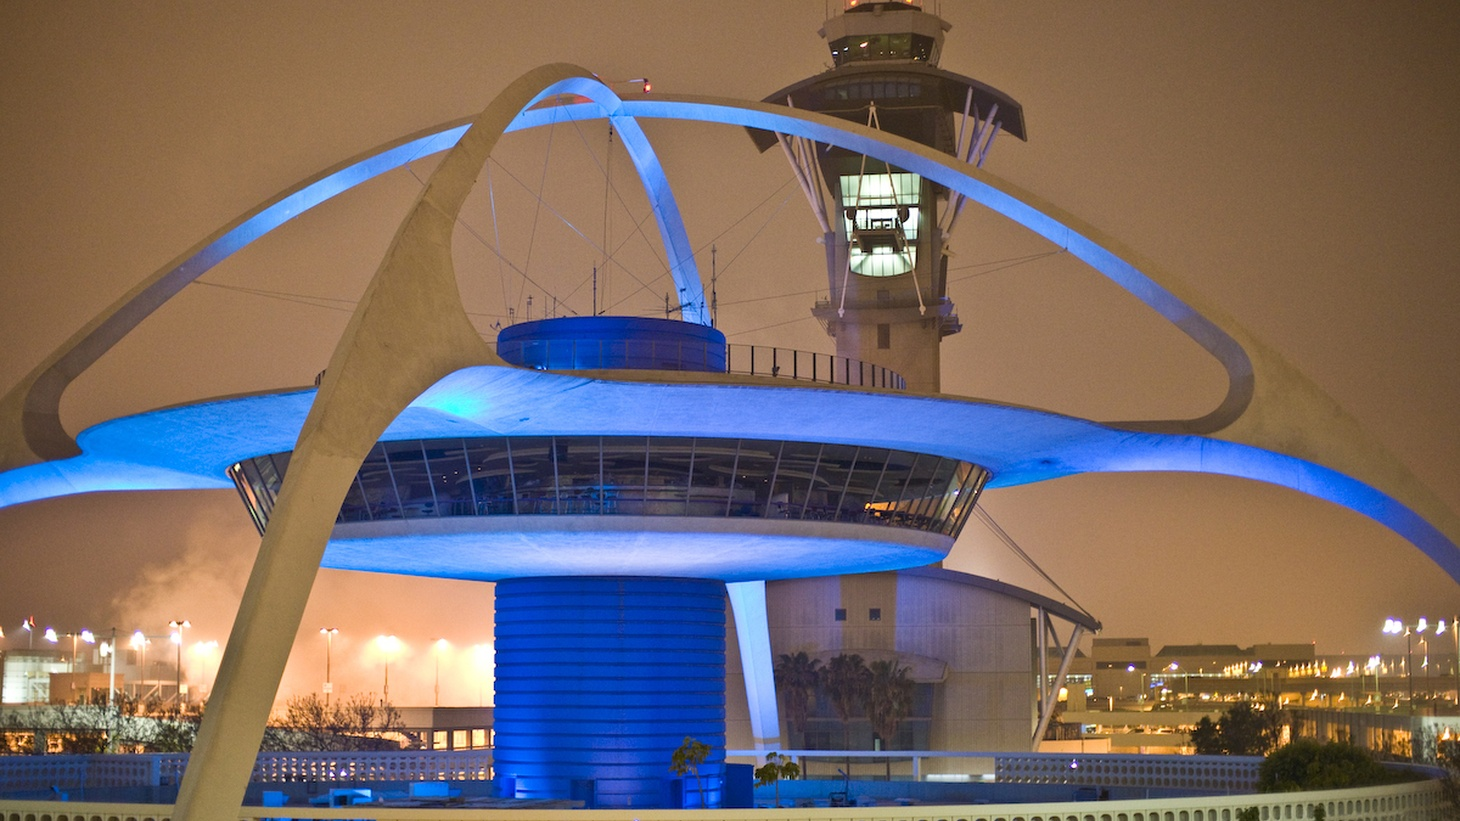 The Theme Building and control tower at LAX.